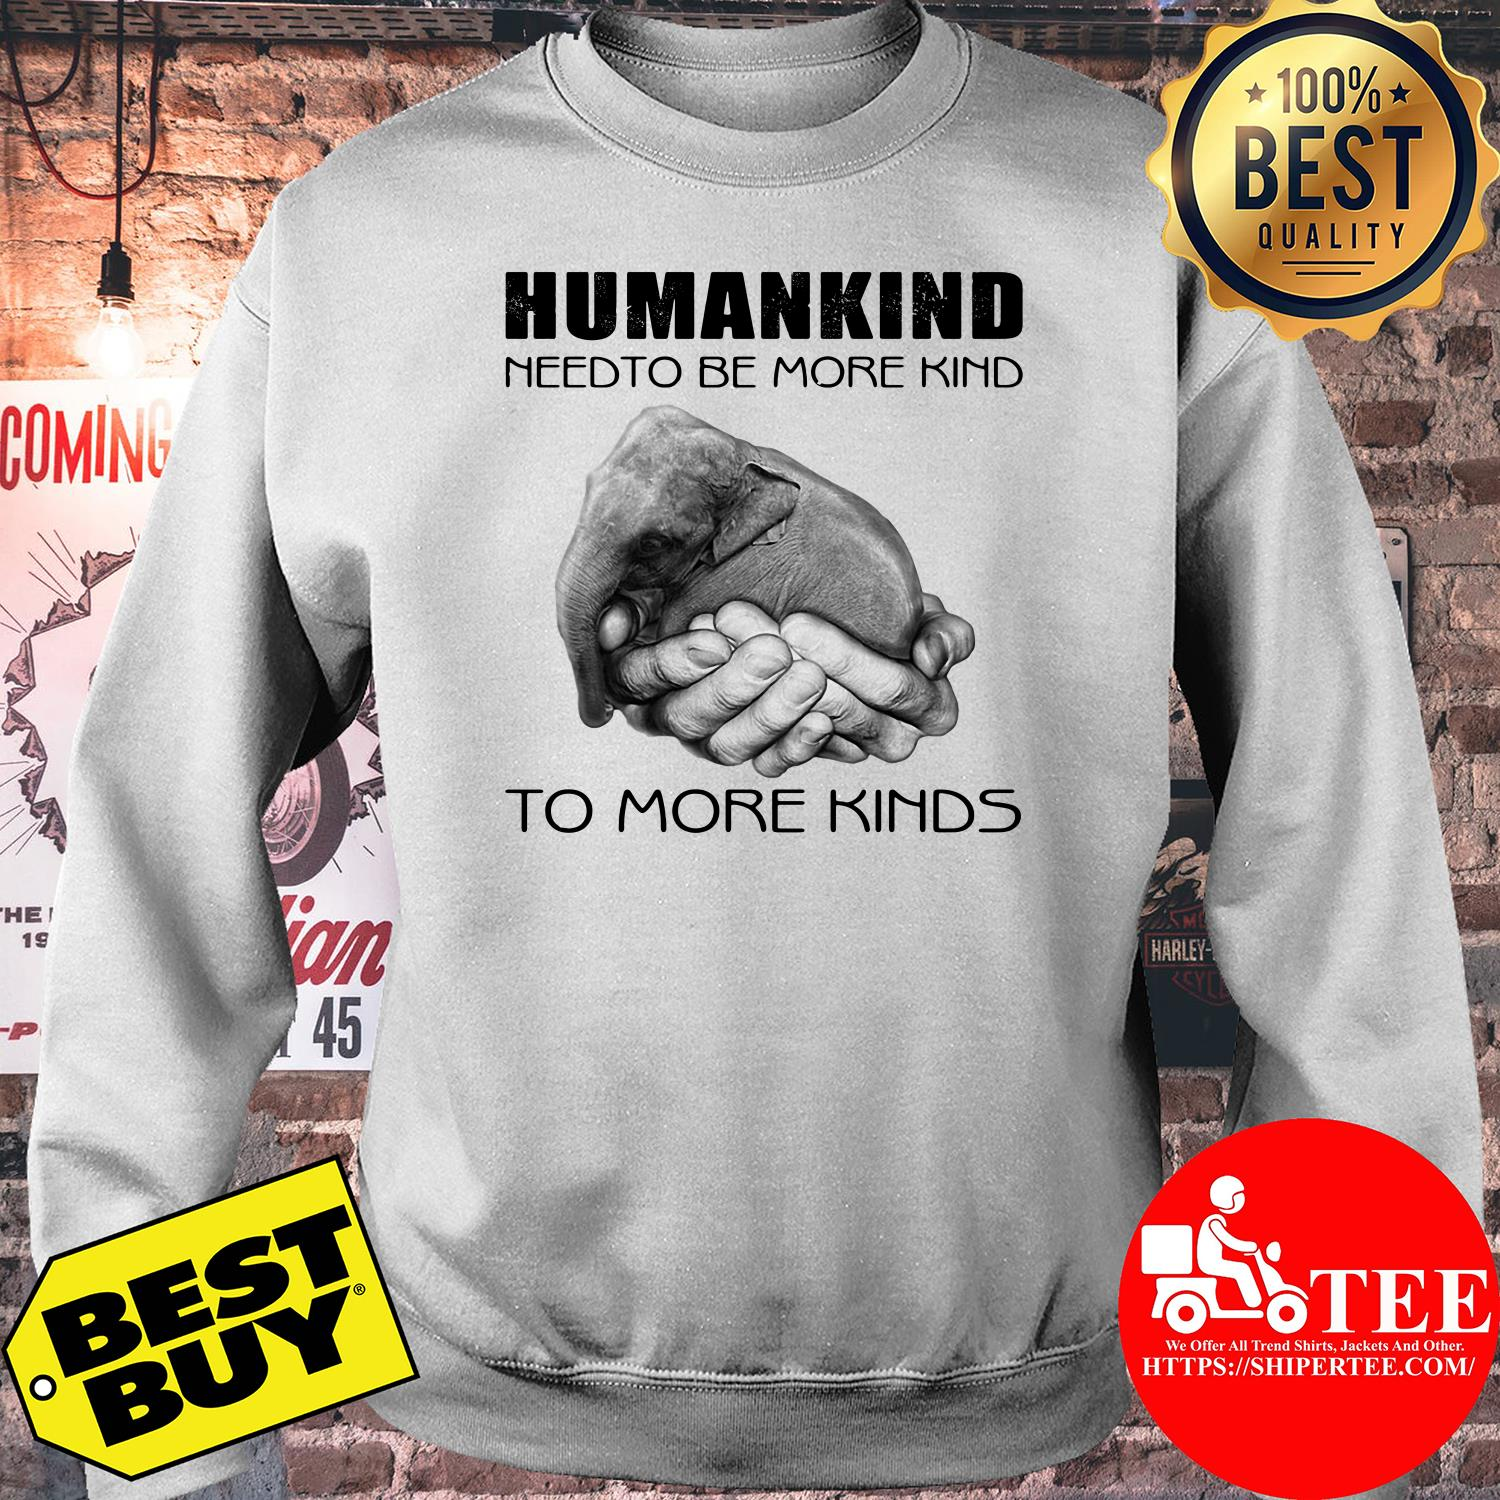 Humankind need to be more kind sweatshirt